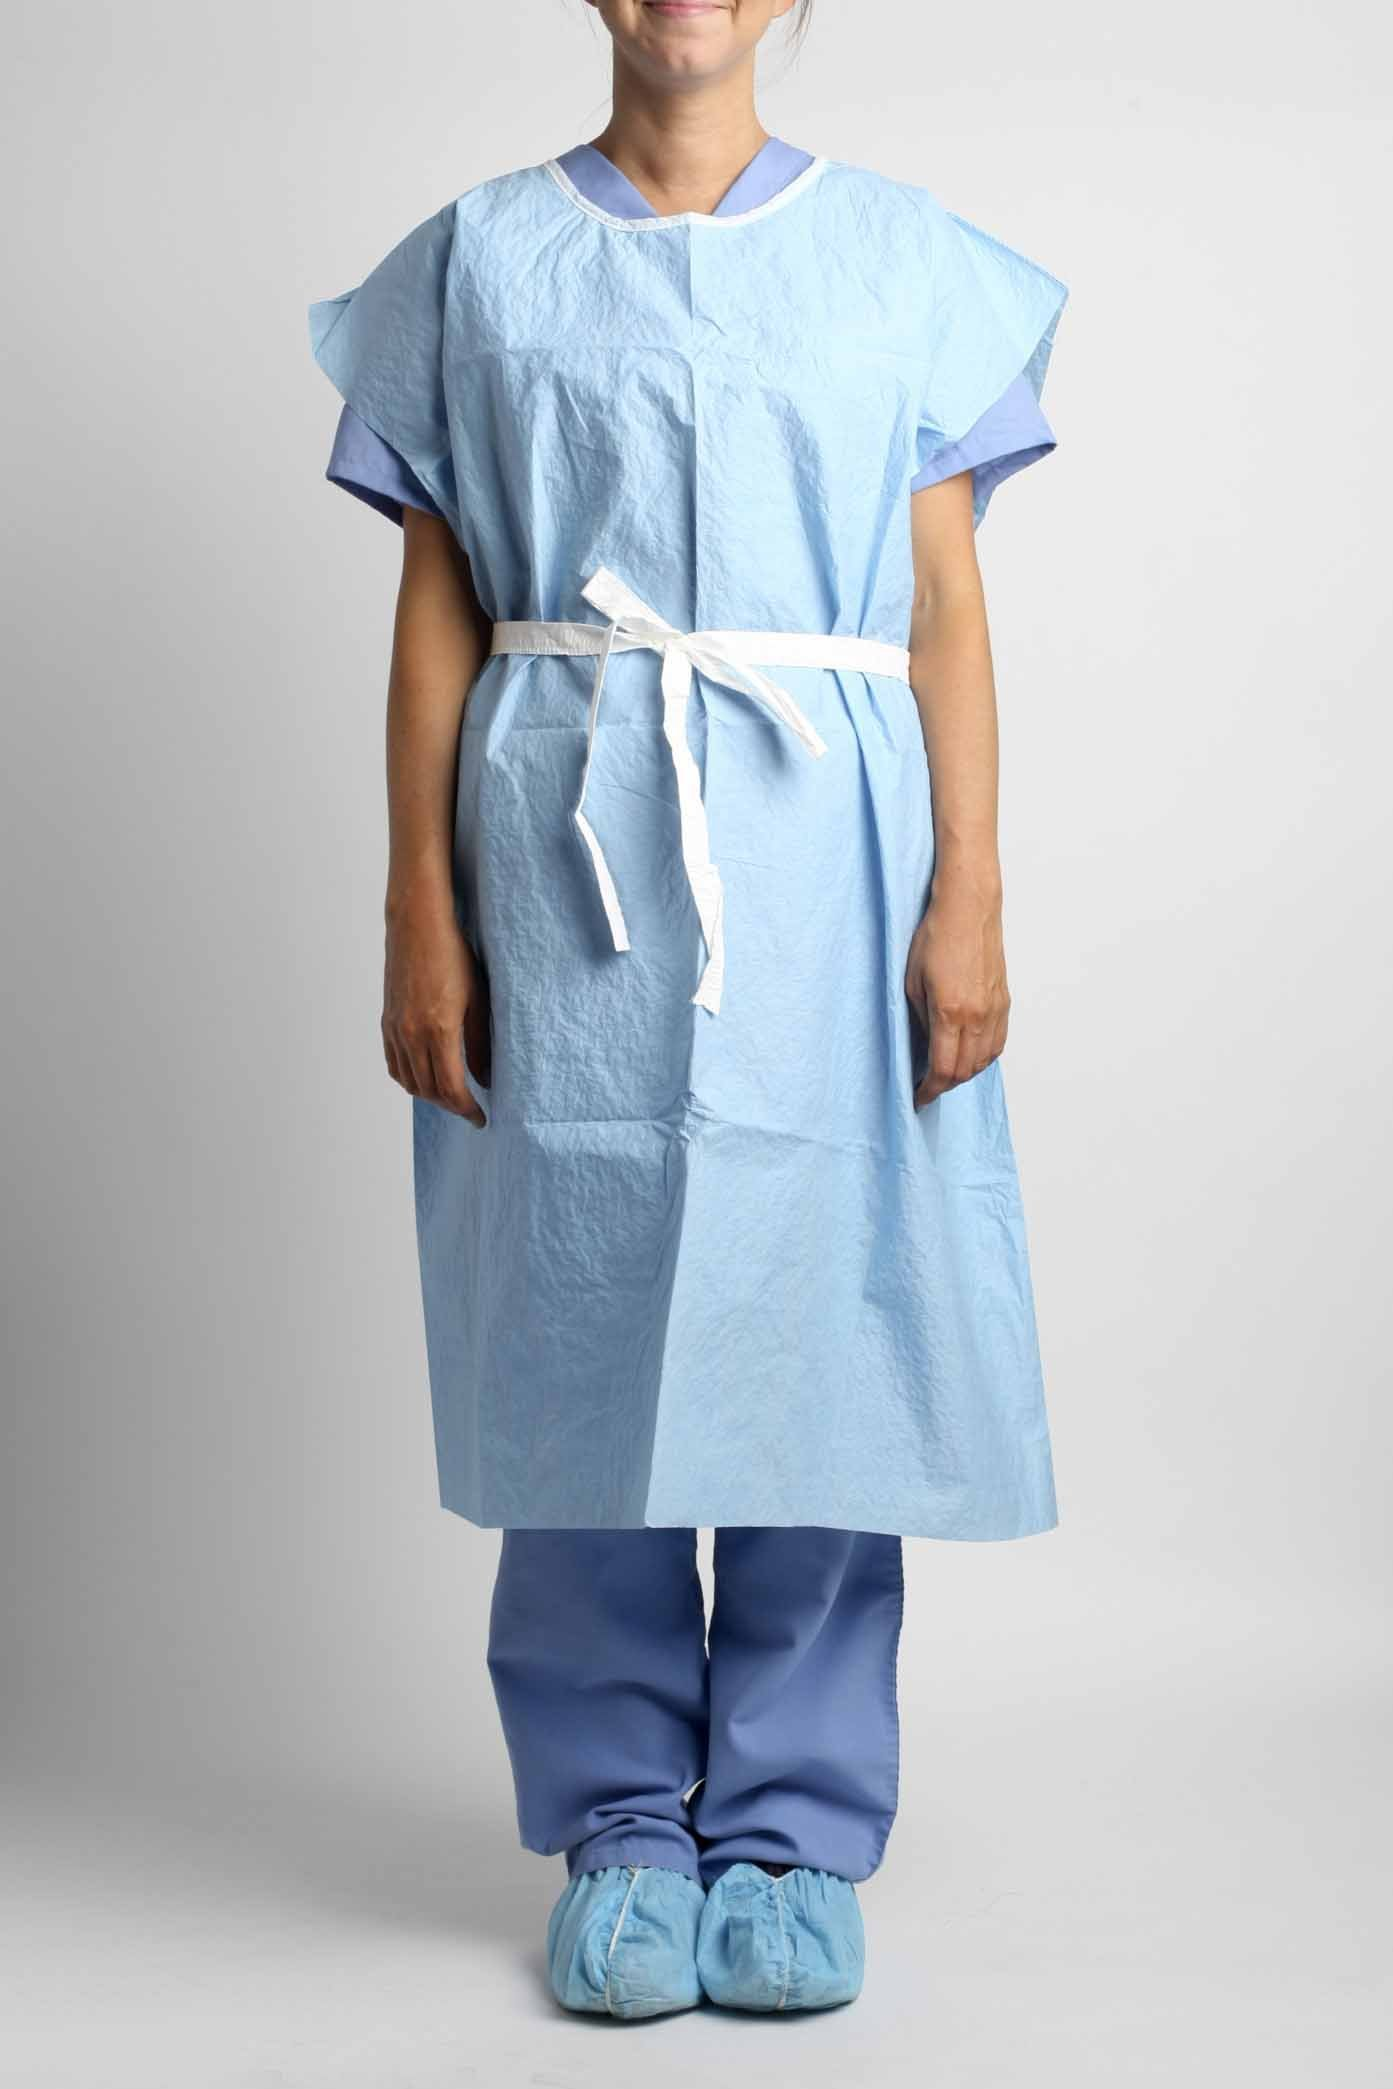 MediChoice Examination Gown, Non-Woven, Reversible Front Back Opening, Stretchable Waist Tie With Knee Length Coverage, Glued Scrim Reinforced, Blue, 30 Inch x 42 Inch (Case of 50)